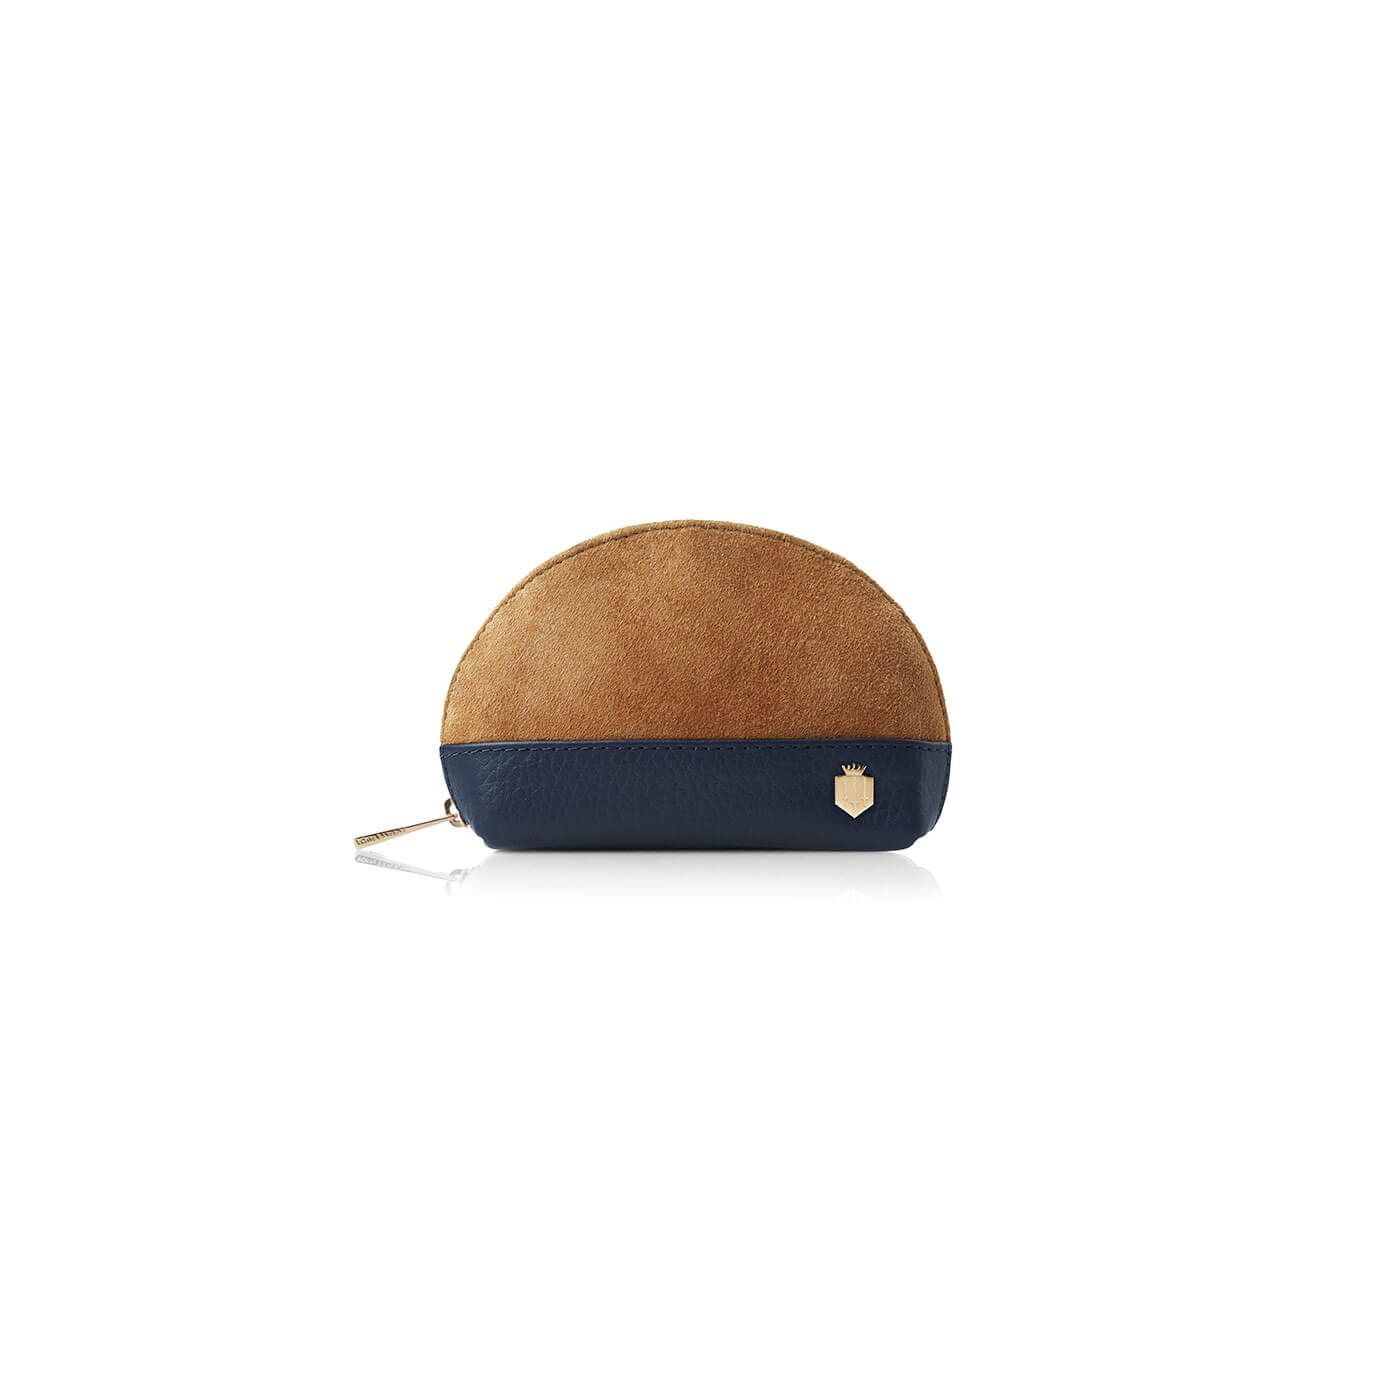 The Chatham II Tan & Navy Suede and Leather Coin Purse - Fairfax & favor